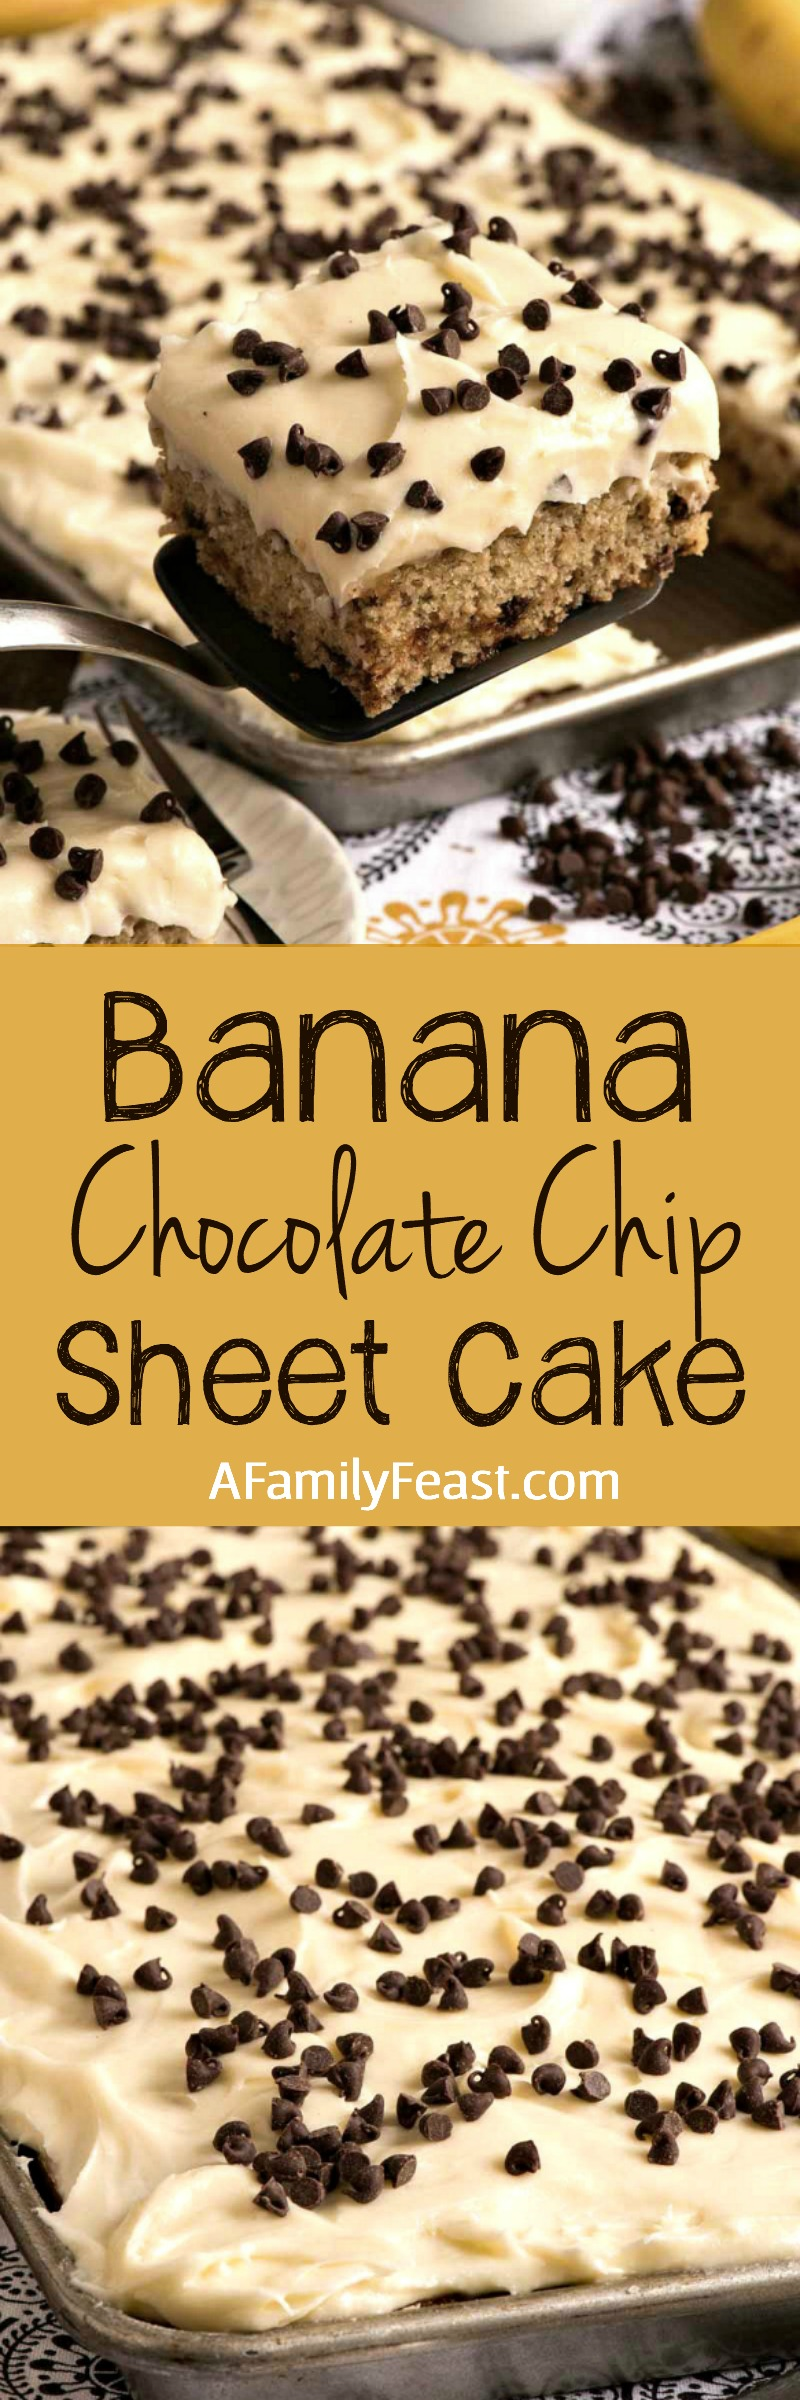 Banana Chocolate Chip Sheet Cake with Cream Cheese Frosting - Easy, moist and delicious! Easily the best sheet cake you'll ever make.